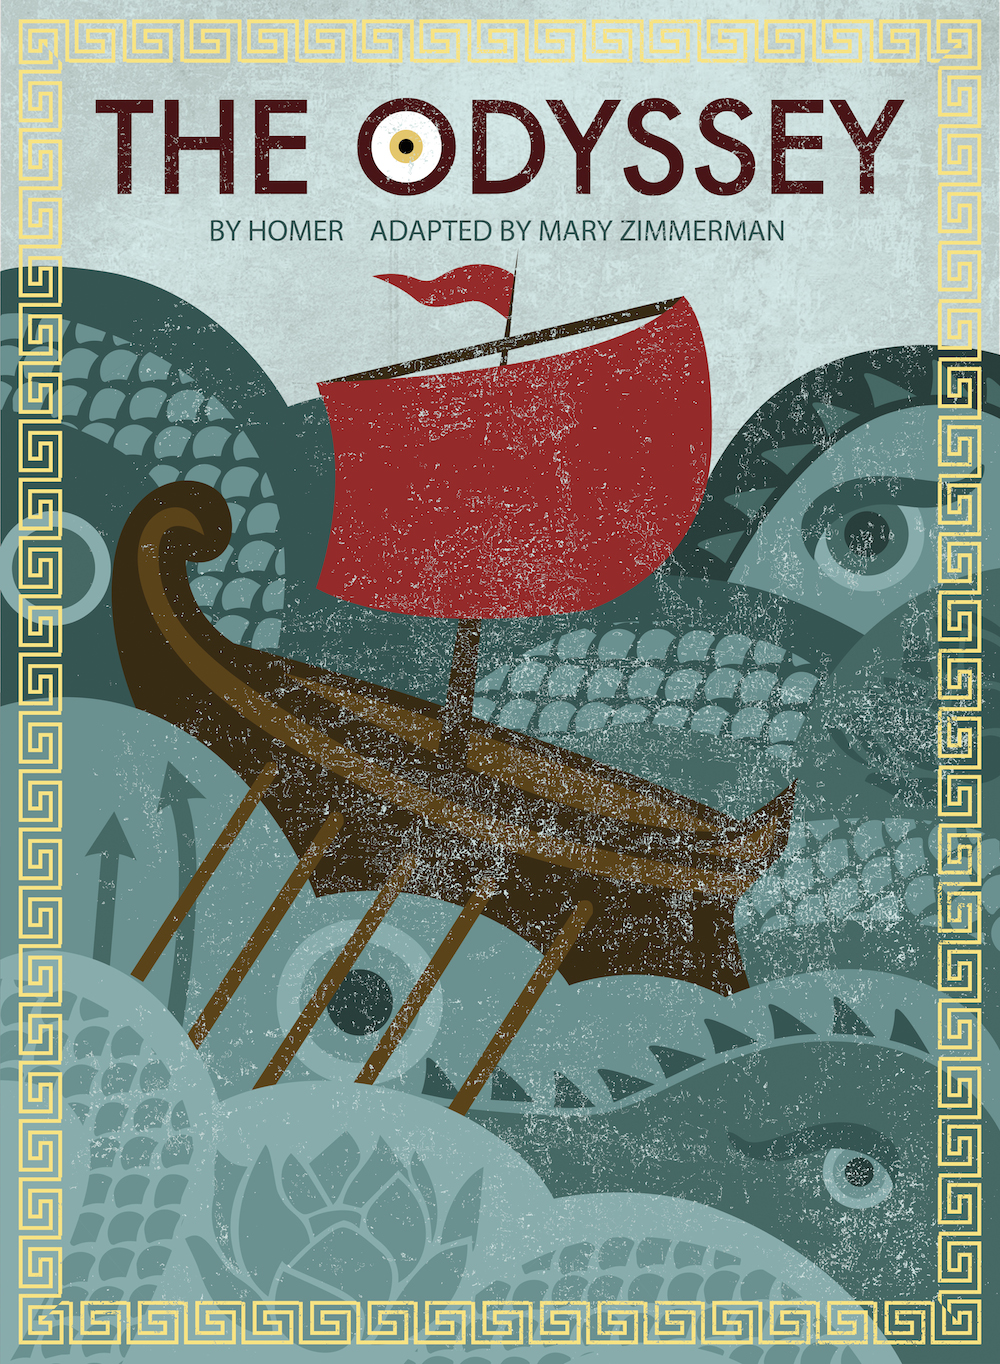 Poster Art for The Odyssey with title